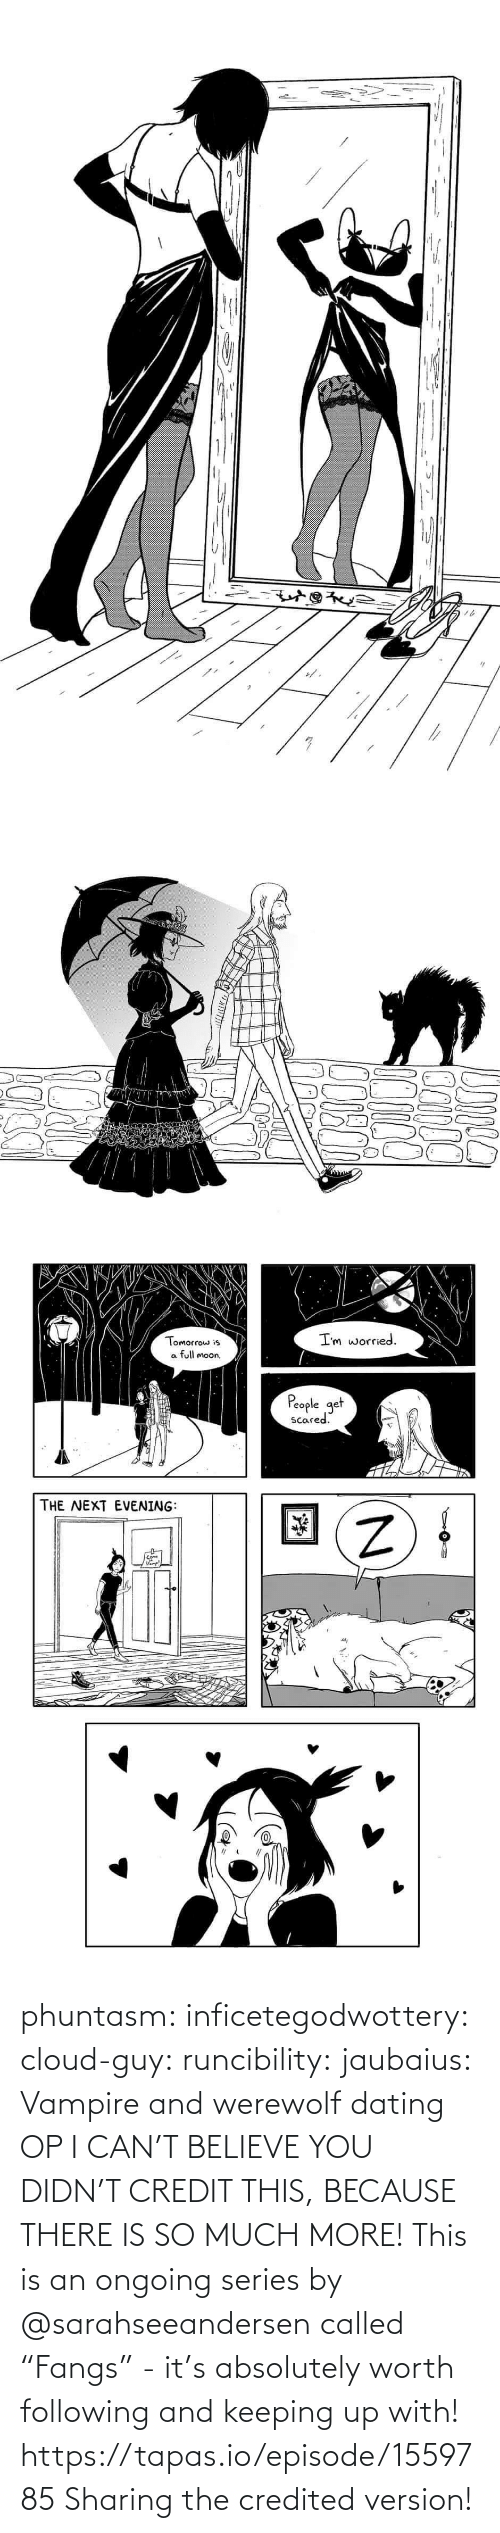 "i can: phuntasm: inficetegodwottery:  cloud-guy:   runcibility:  jaubaius:   Vampire and werewolf dating   OP I CAN'T BELIEVE YOU DIDN'T CREDIT THIS, BECAUSE THERE IS SO MUCH MORE! This is an ongoing series by @sarahseeandersen called ""Fangs"" - it's absolutely worth following and keeping up with! https://tapas.io/episode/1559785    Sharing the credited version!"